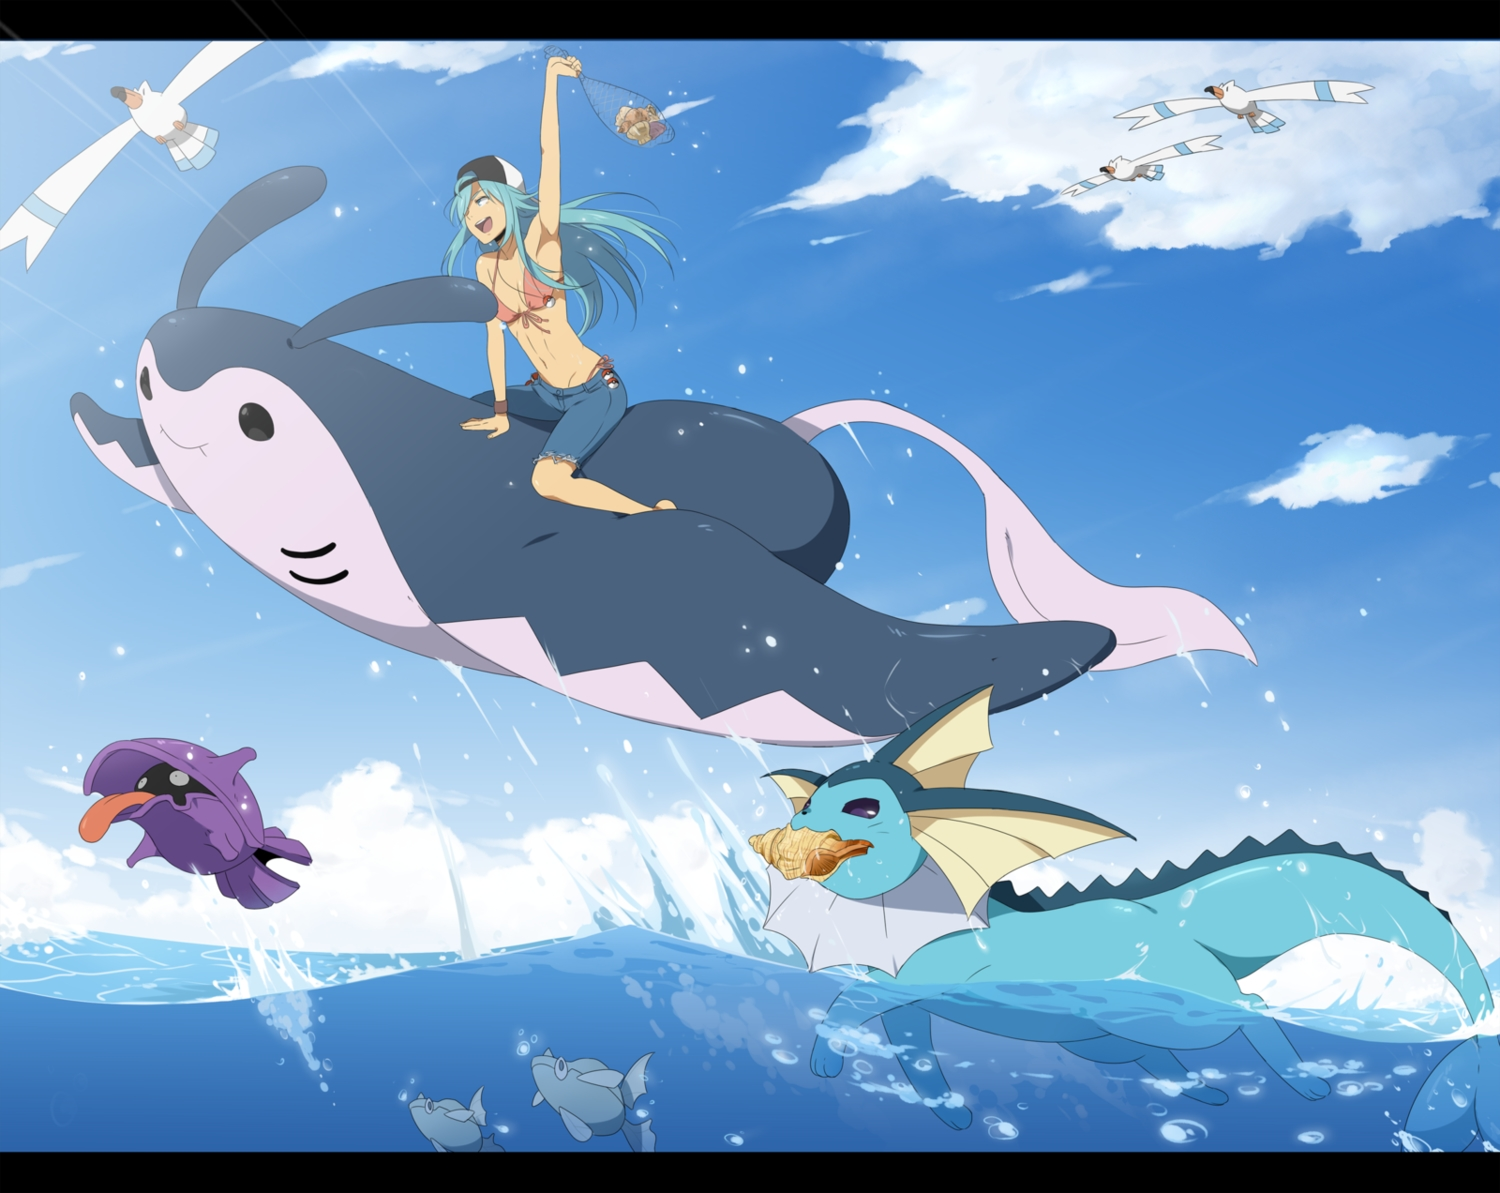 aqua_hair bikini blue_hair bra clouds hat mantine pokemon remoraid shellder swimsuit underwear vaporeon water wingull